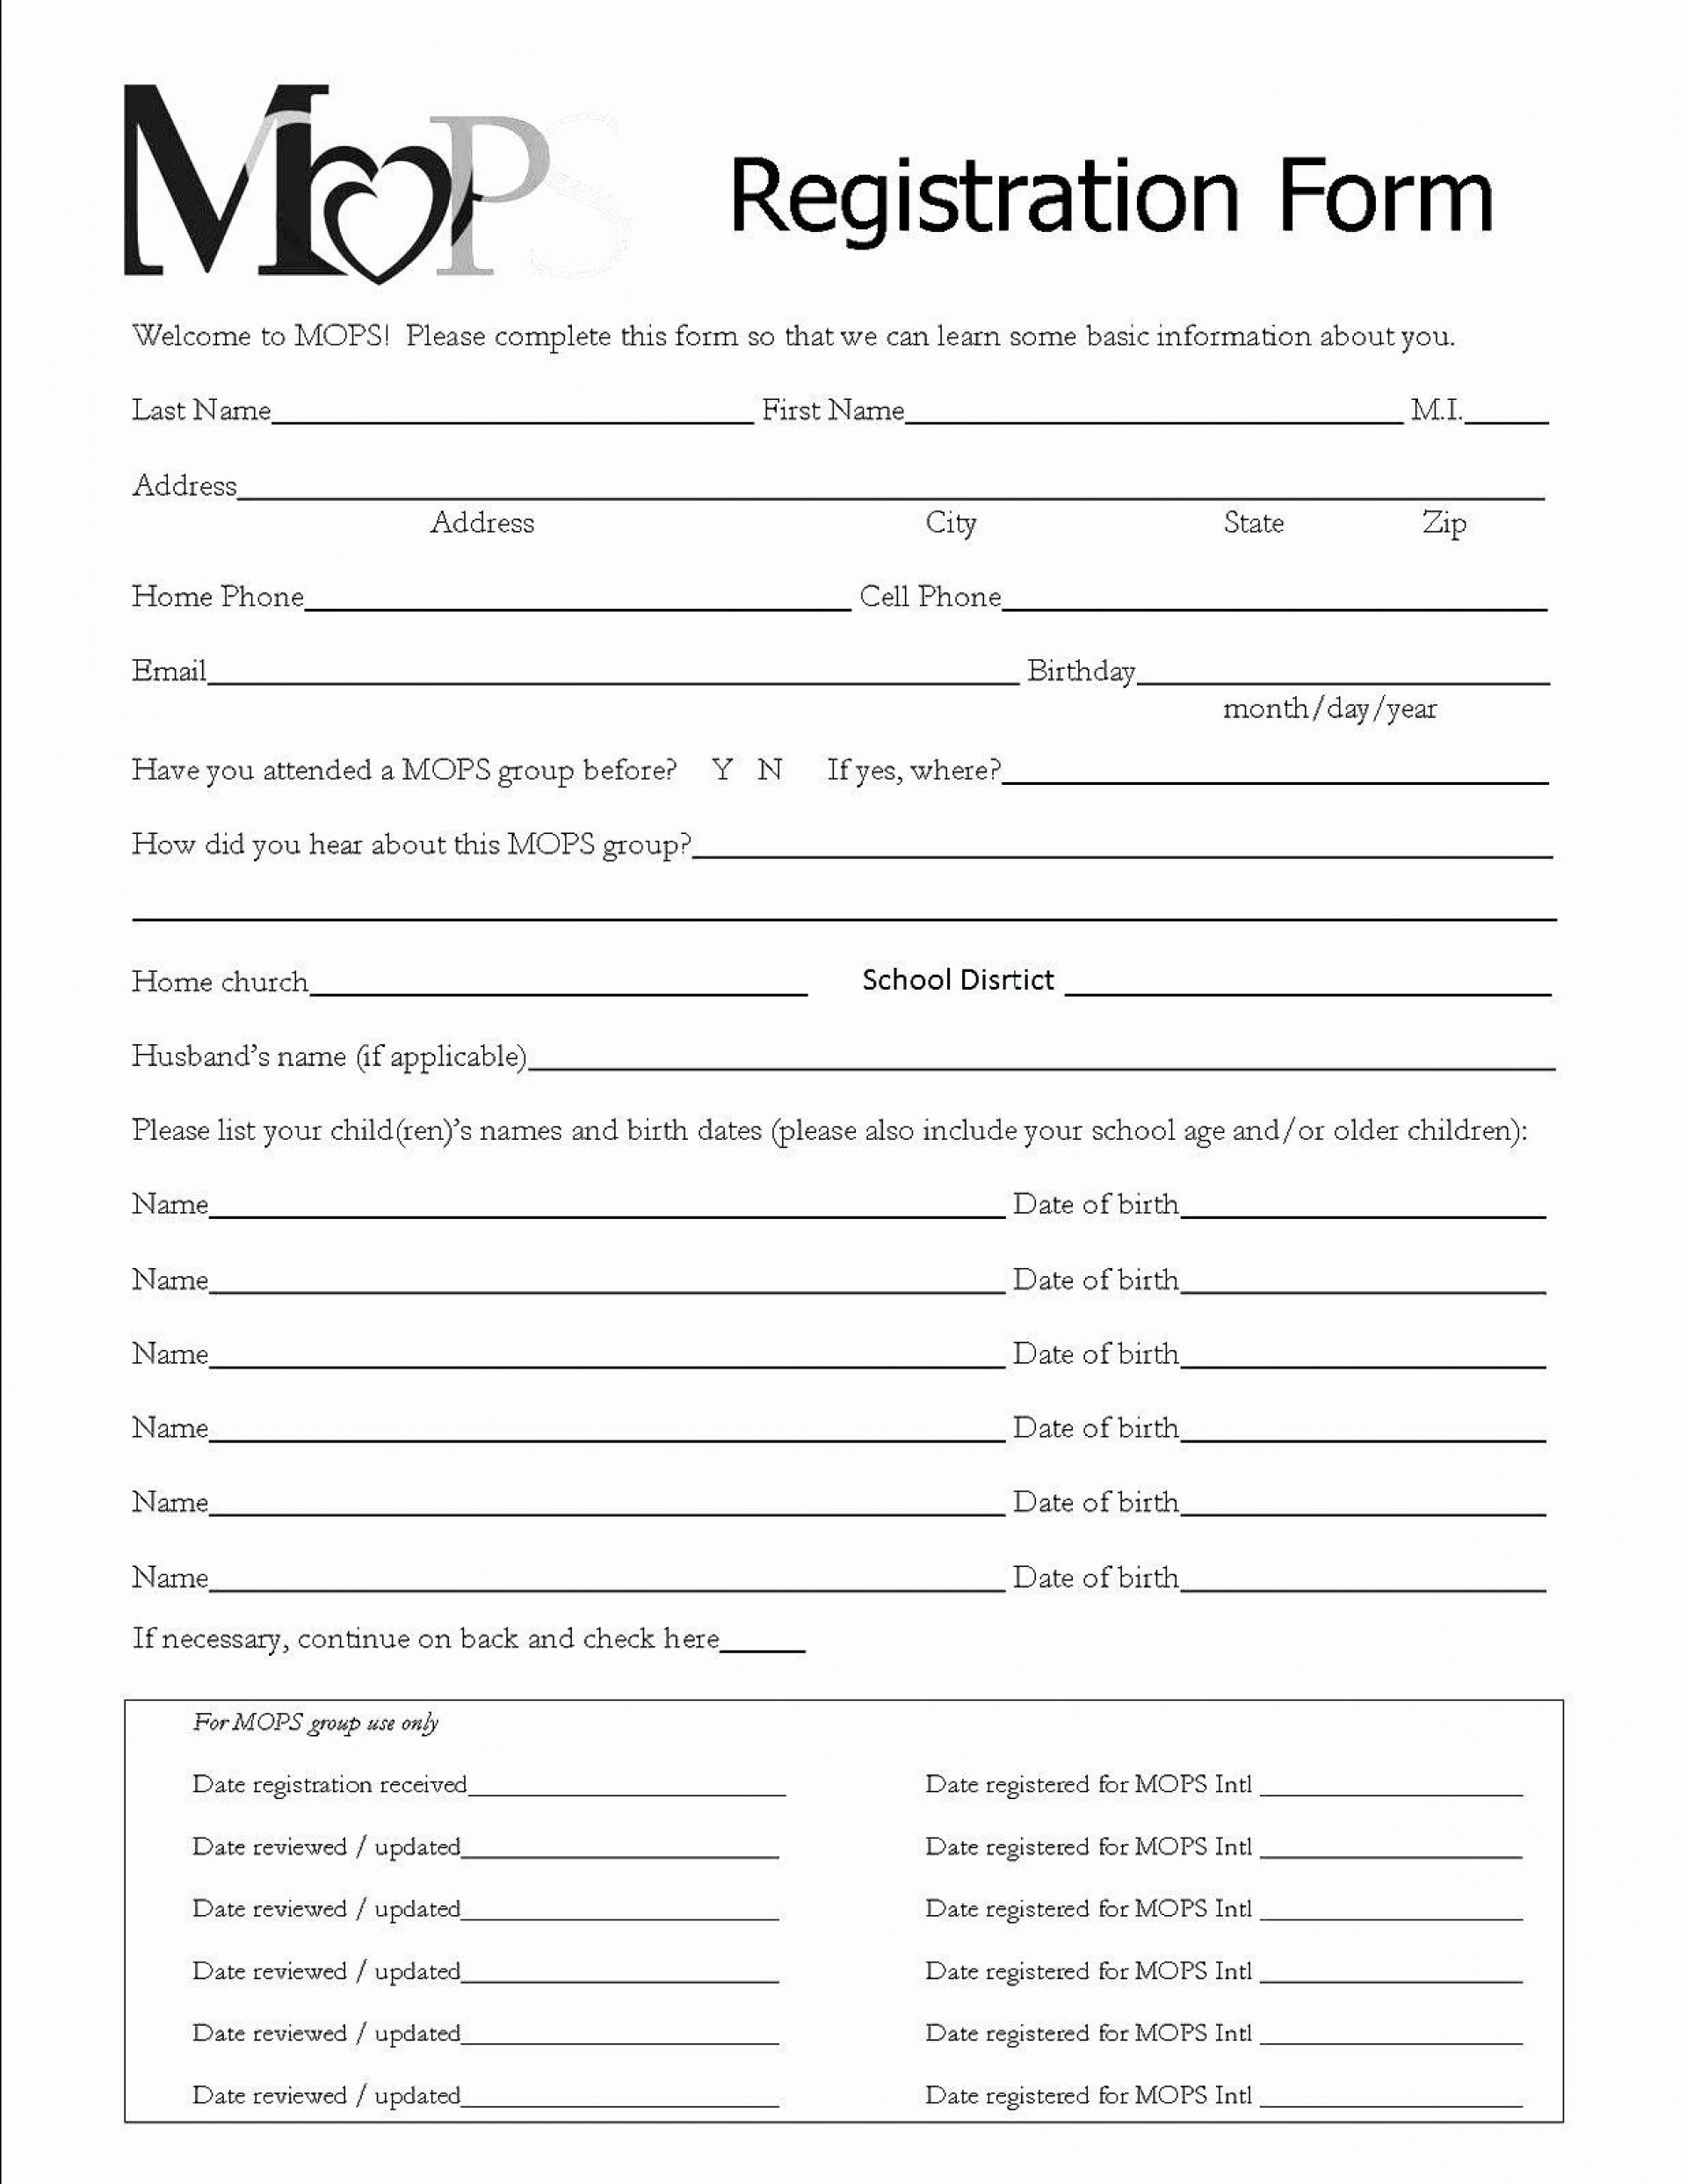 000 Staggering Event Registration Form Template Design  Word Excel Microsoft1920